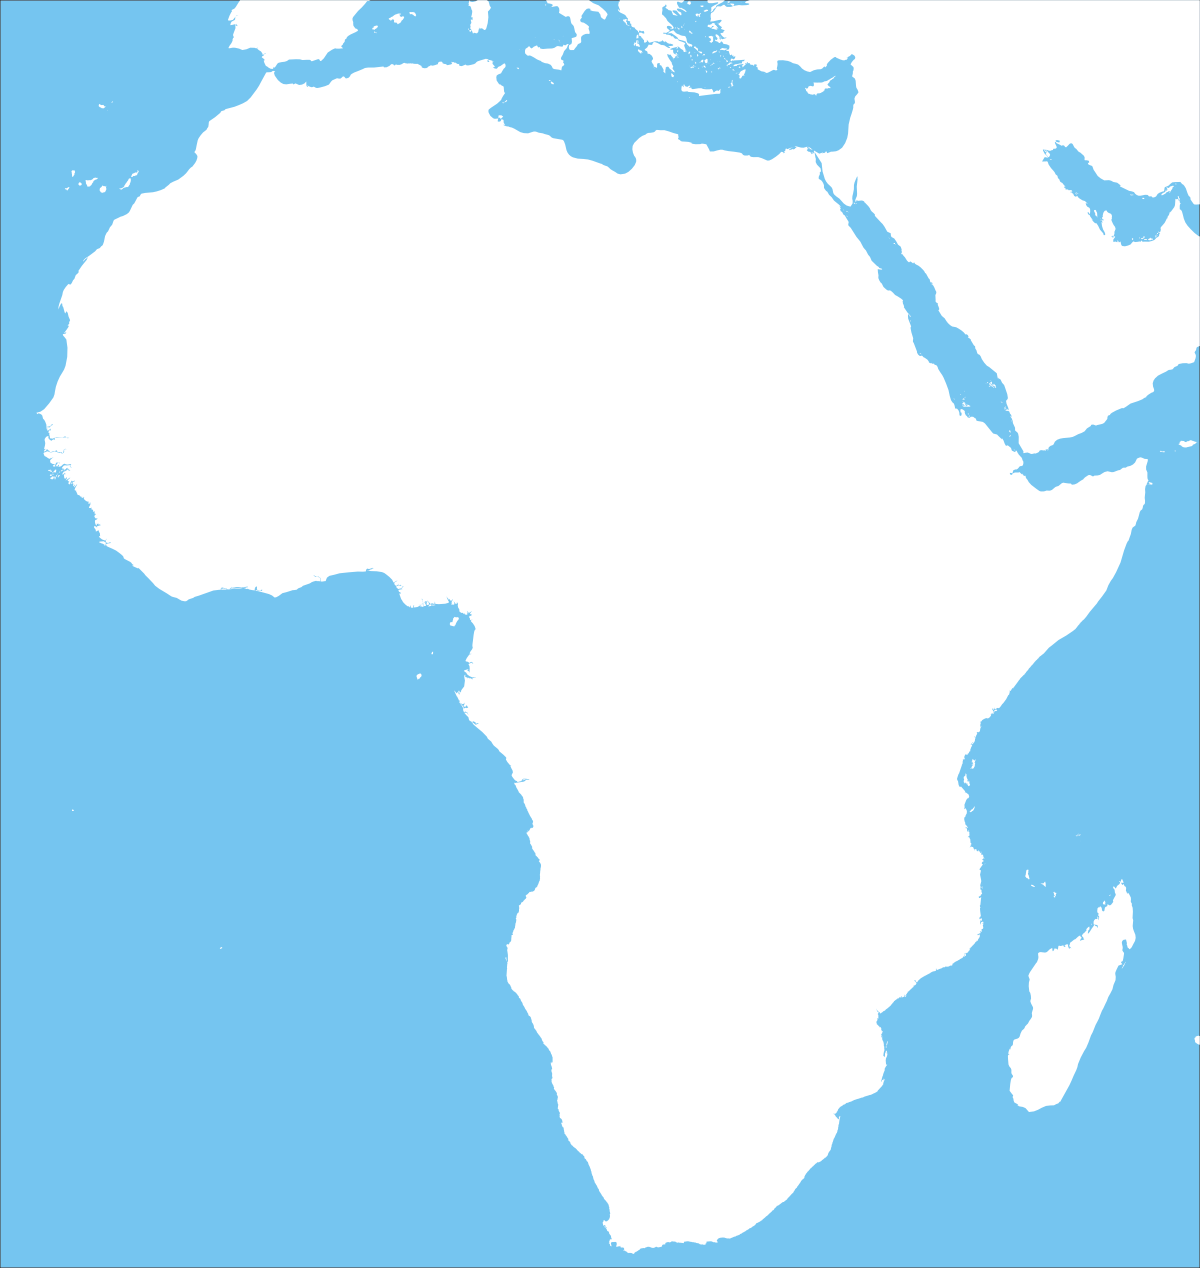 Blank Africa Outline Map - Free Printable Maps